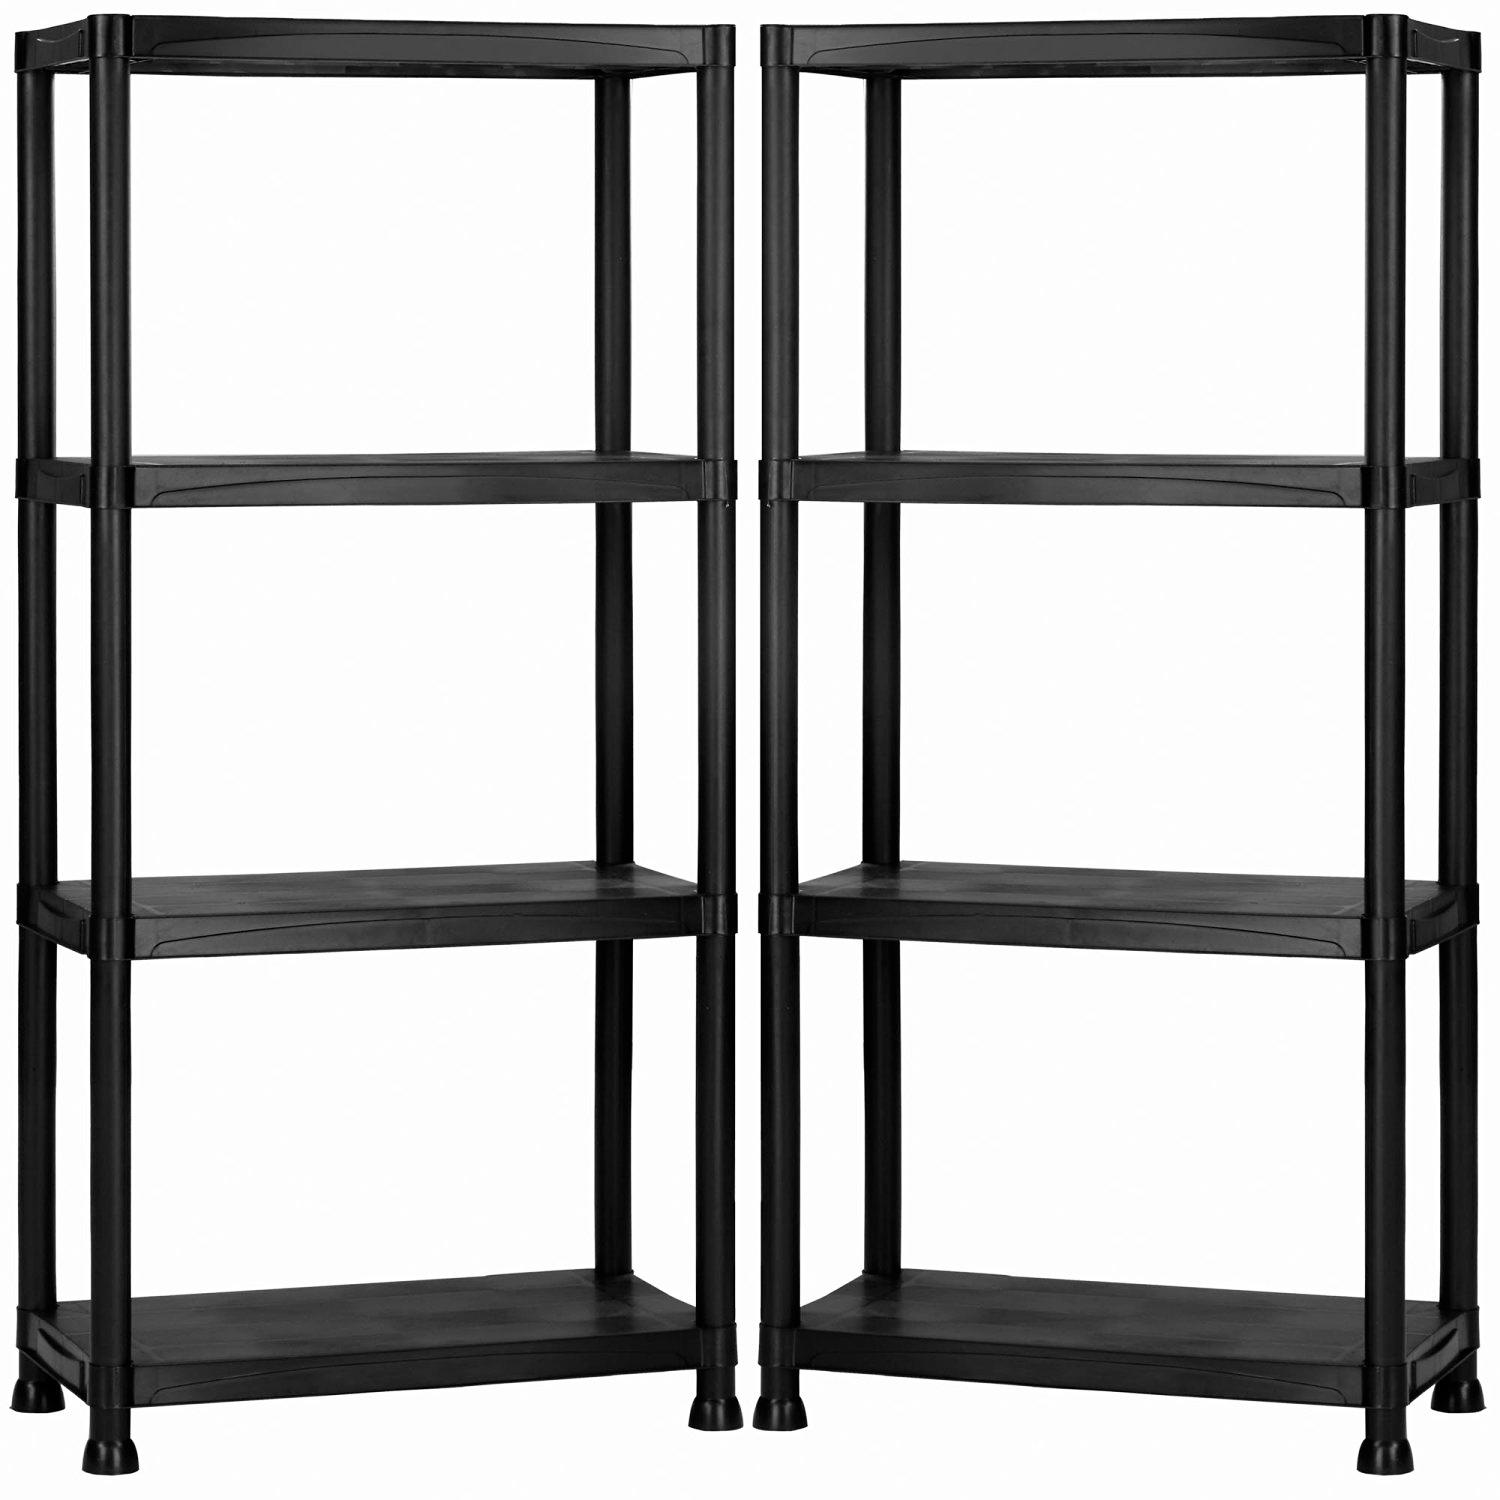 new 2x 4 tier black plastic heavy duty shelving racking. Black Bedroom Furniture Sets. Home Design Ideas